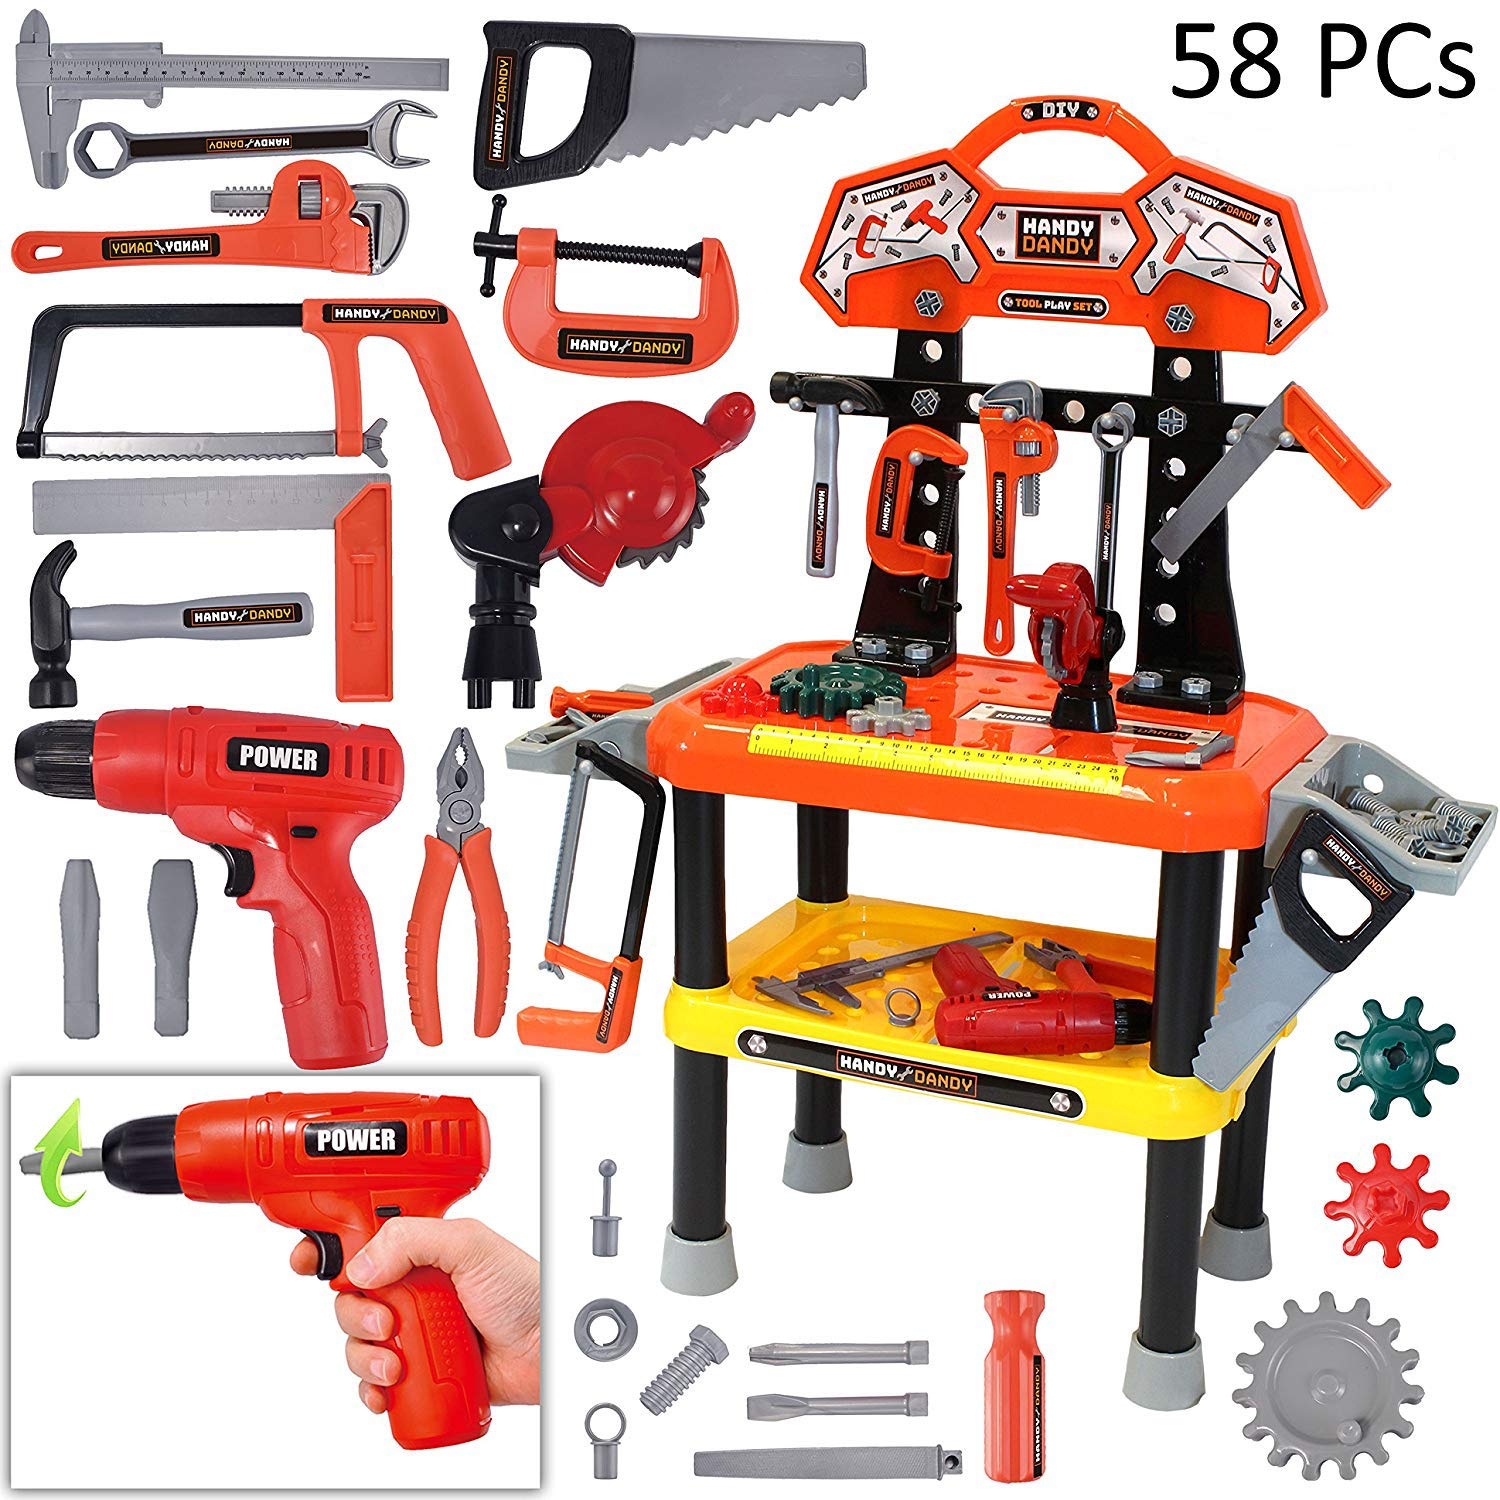 58 Pieces Kids Workbench with Realistic Tools and Electric Drill for Construction Workshop Tool Bench, STEM Educational Play, Pretend Play, Birthday Gifts and Tool Bench Building Set by Joyin Toy